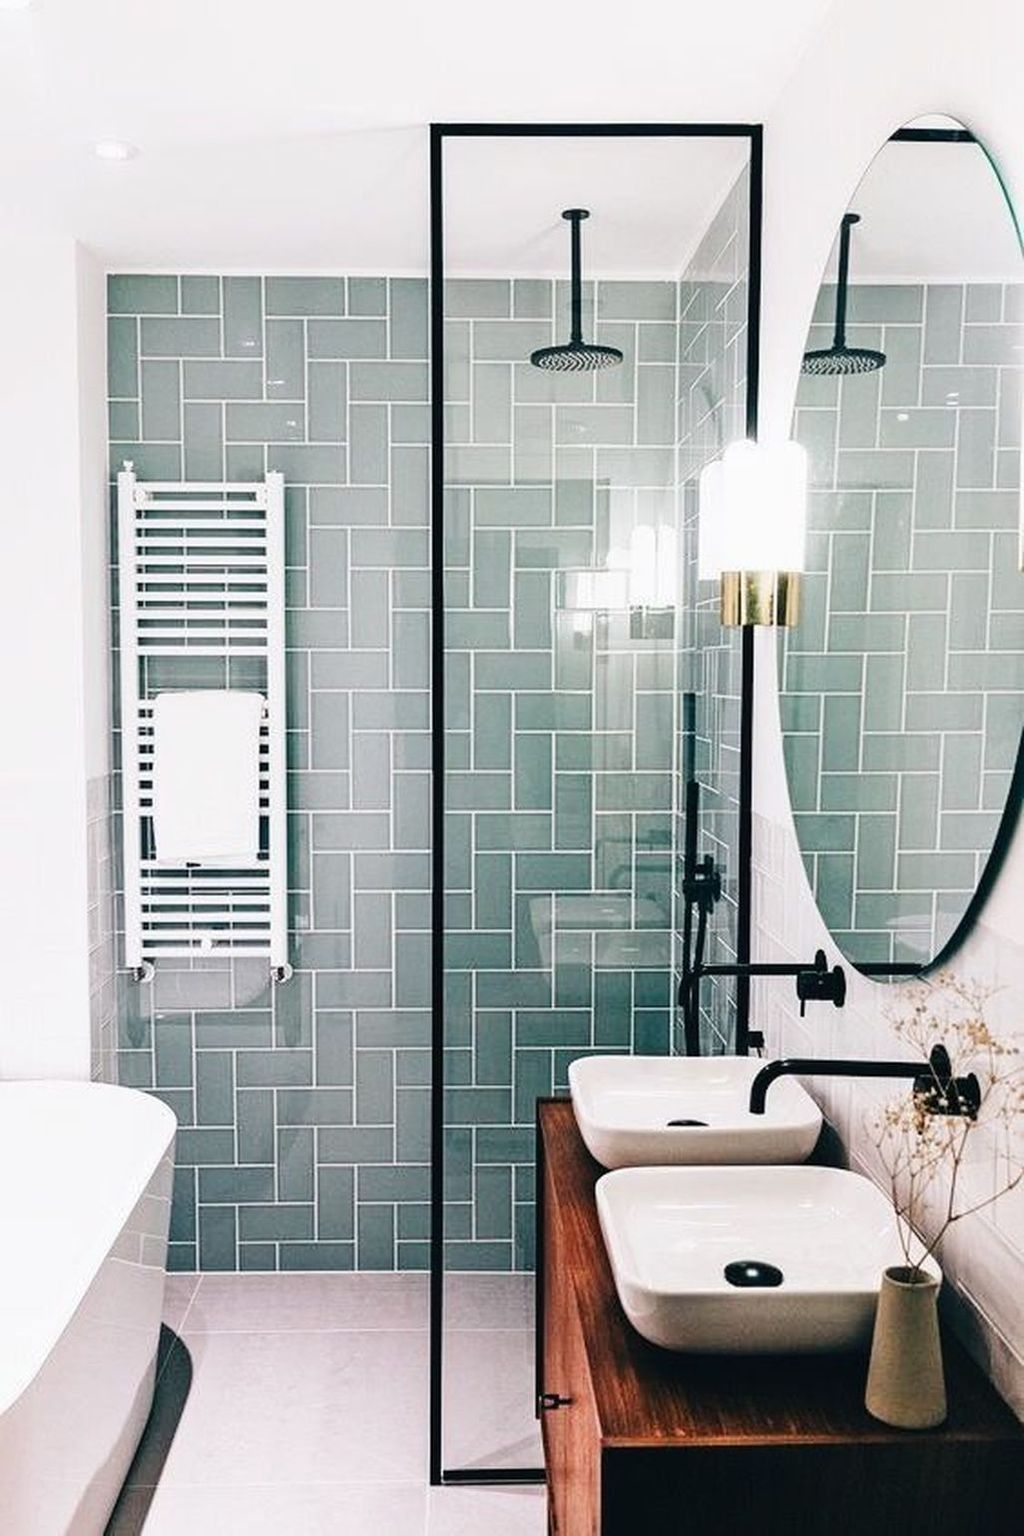 30 Excellent Bathroom Design Ideas You Should Have With Images